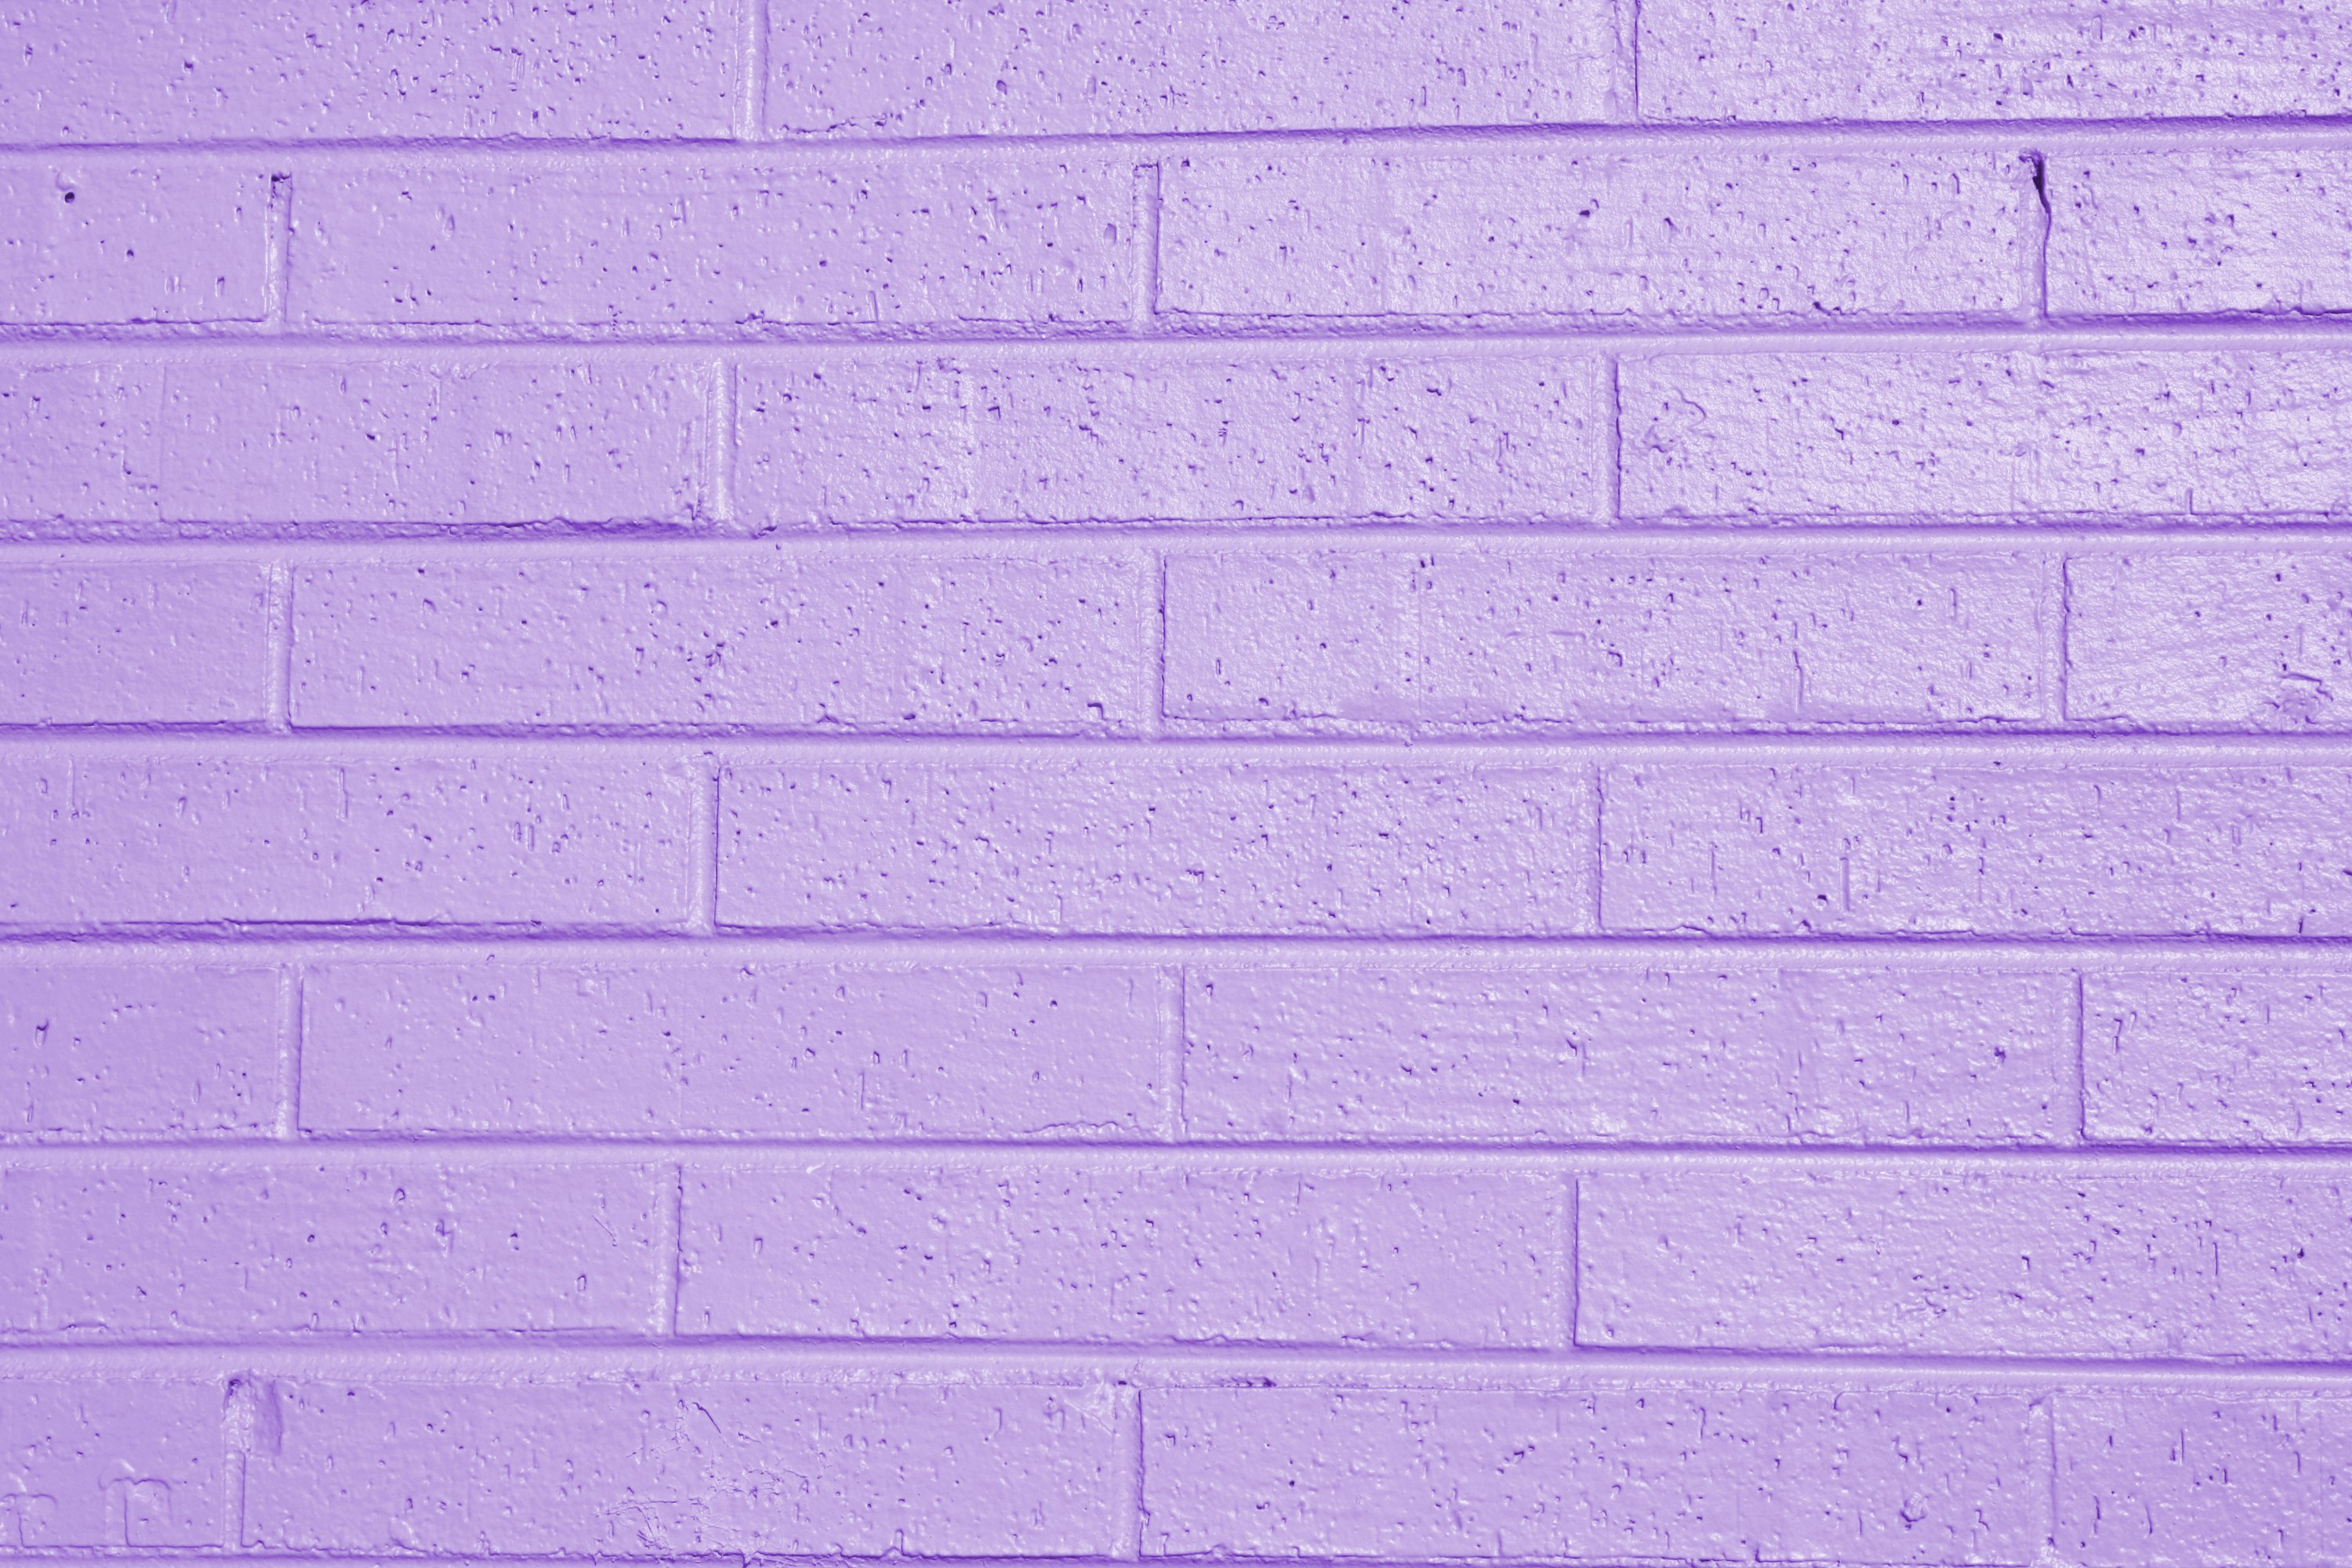 Lilac or Lavender Painted Brick Wall Texture Picture Photograph 3000x2000